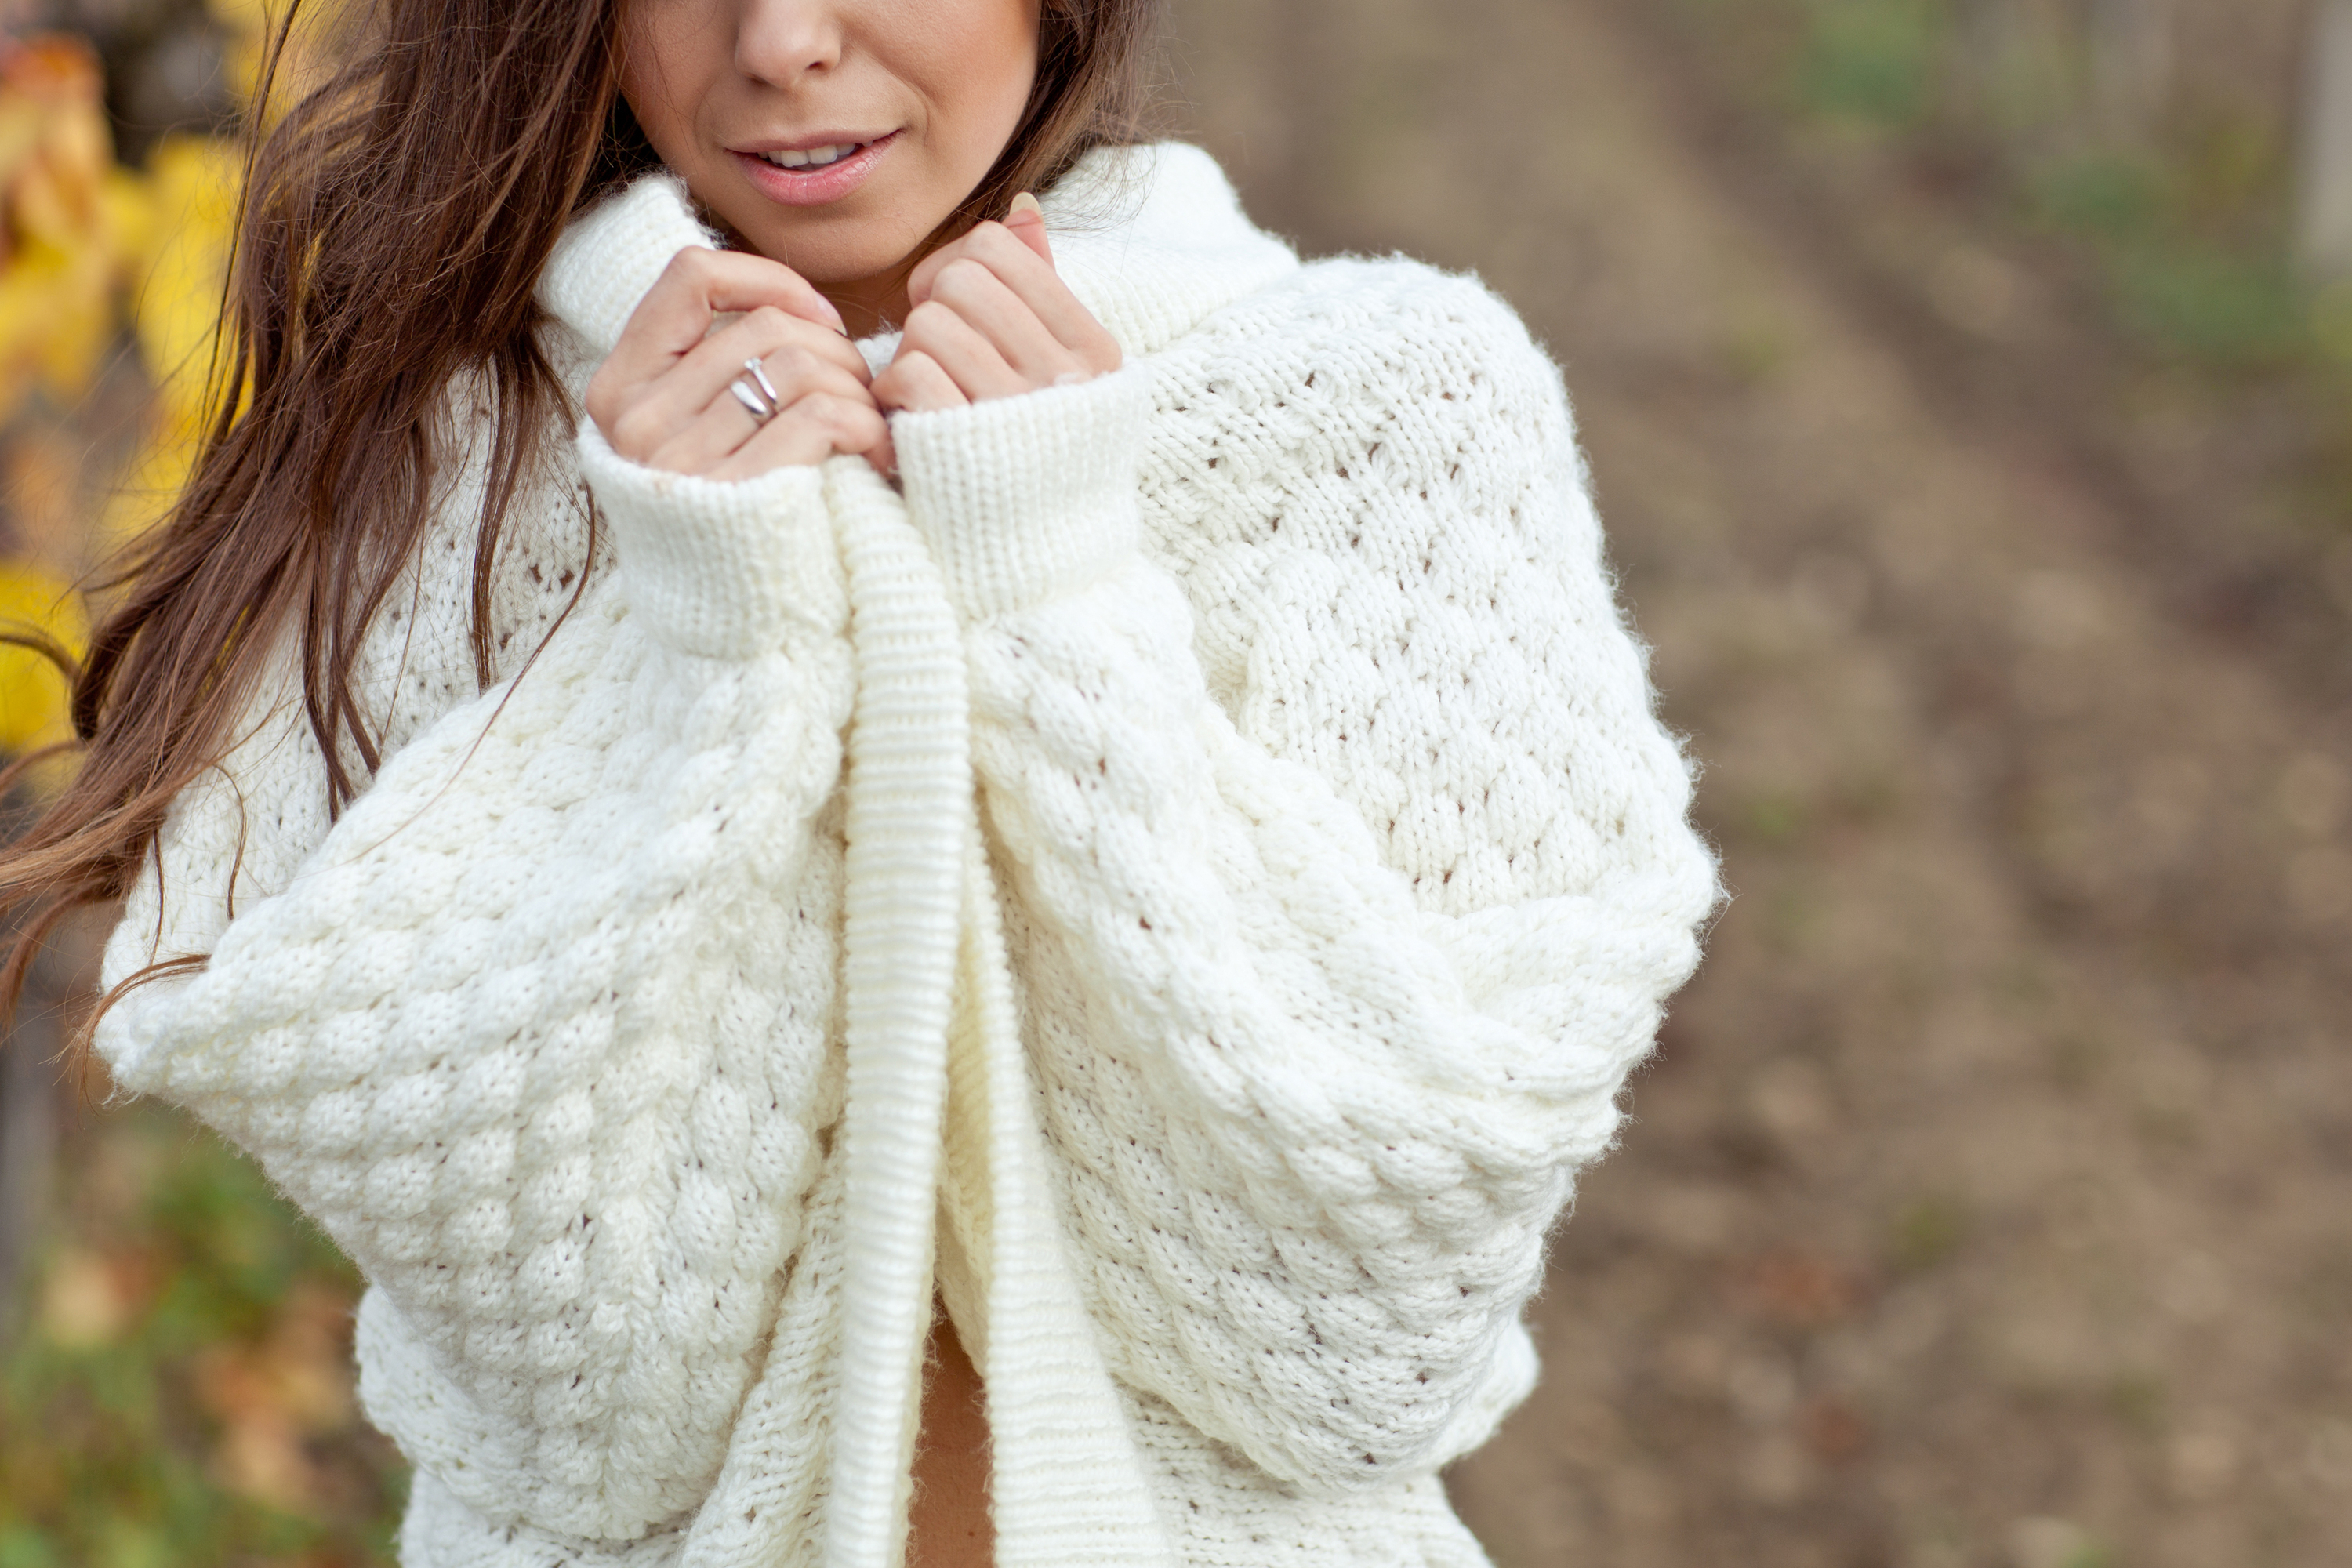 baggy cardigans are the perfect accessory for the cool fall weather